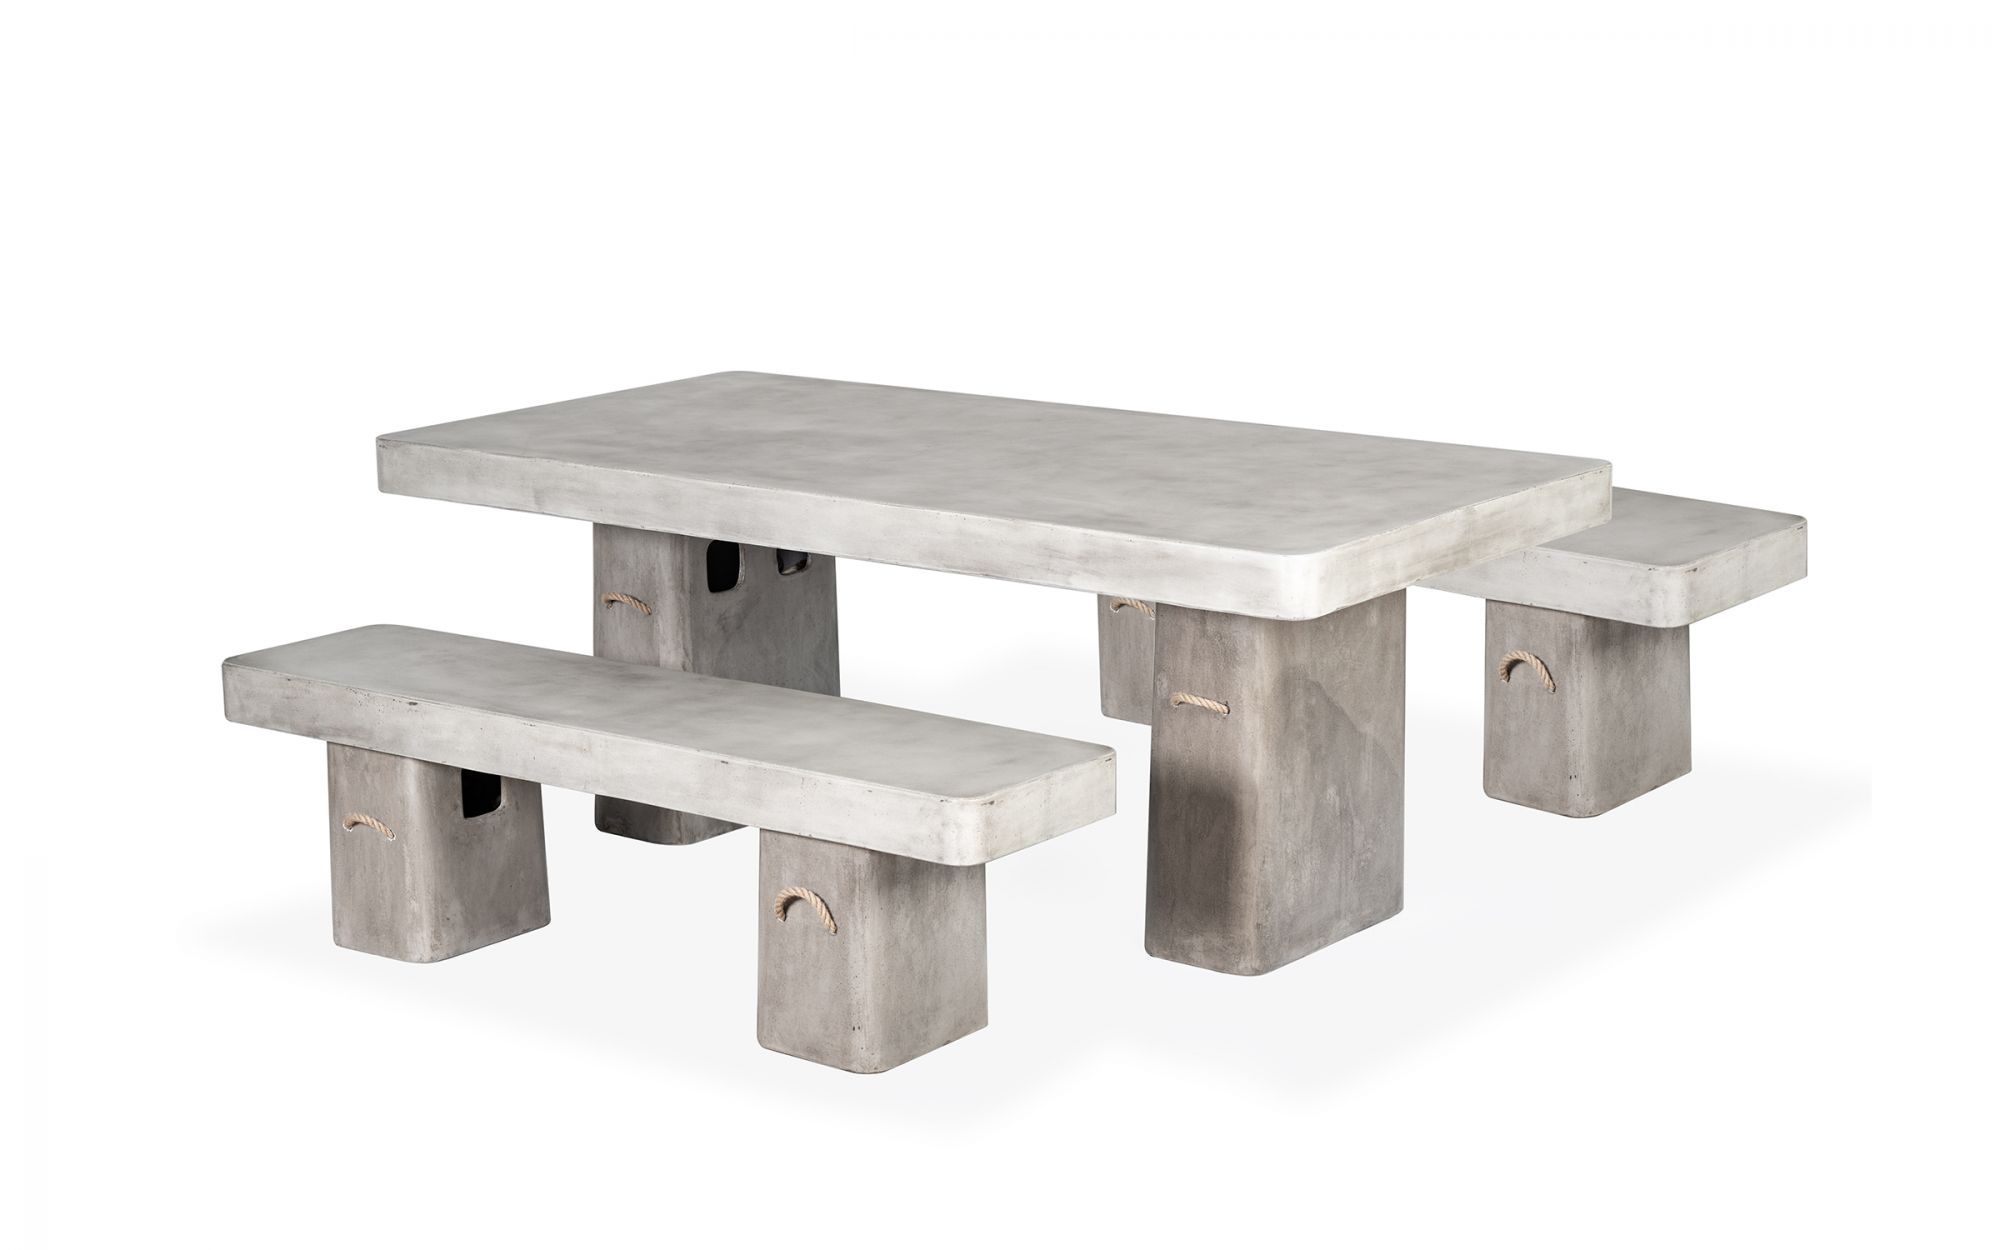 DiningTable-bench-Era-EraSeries